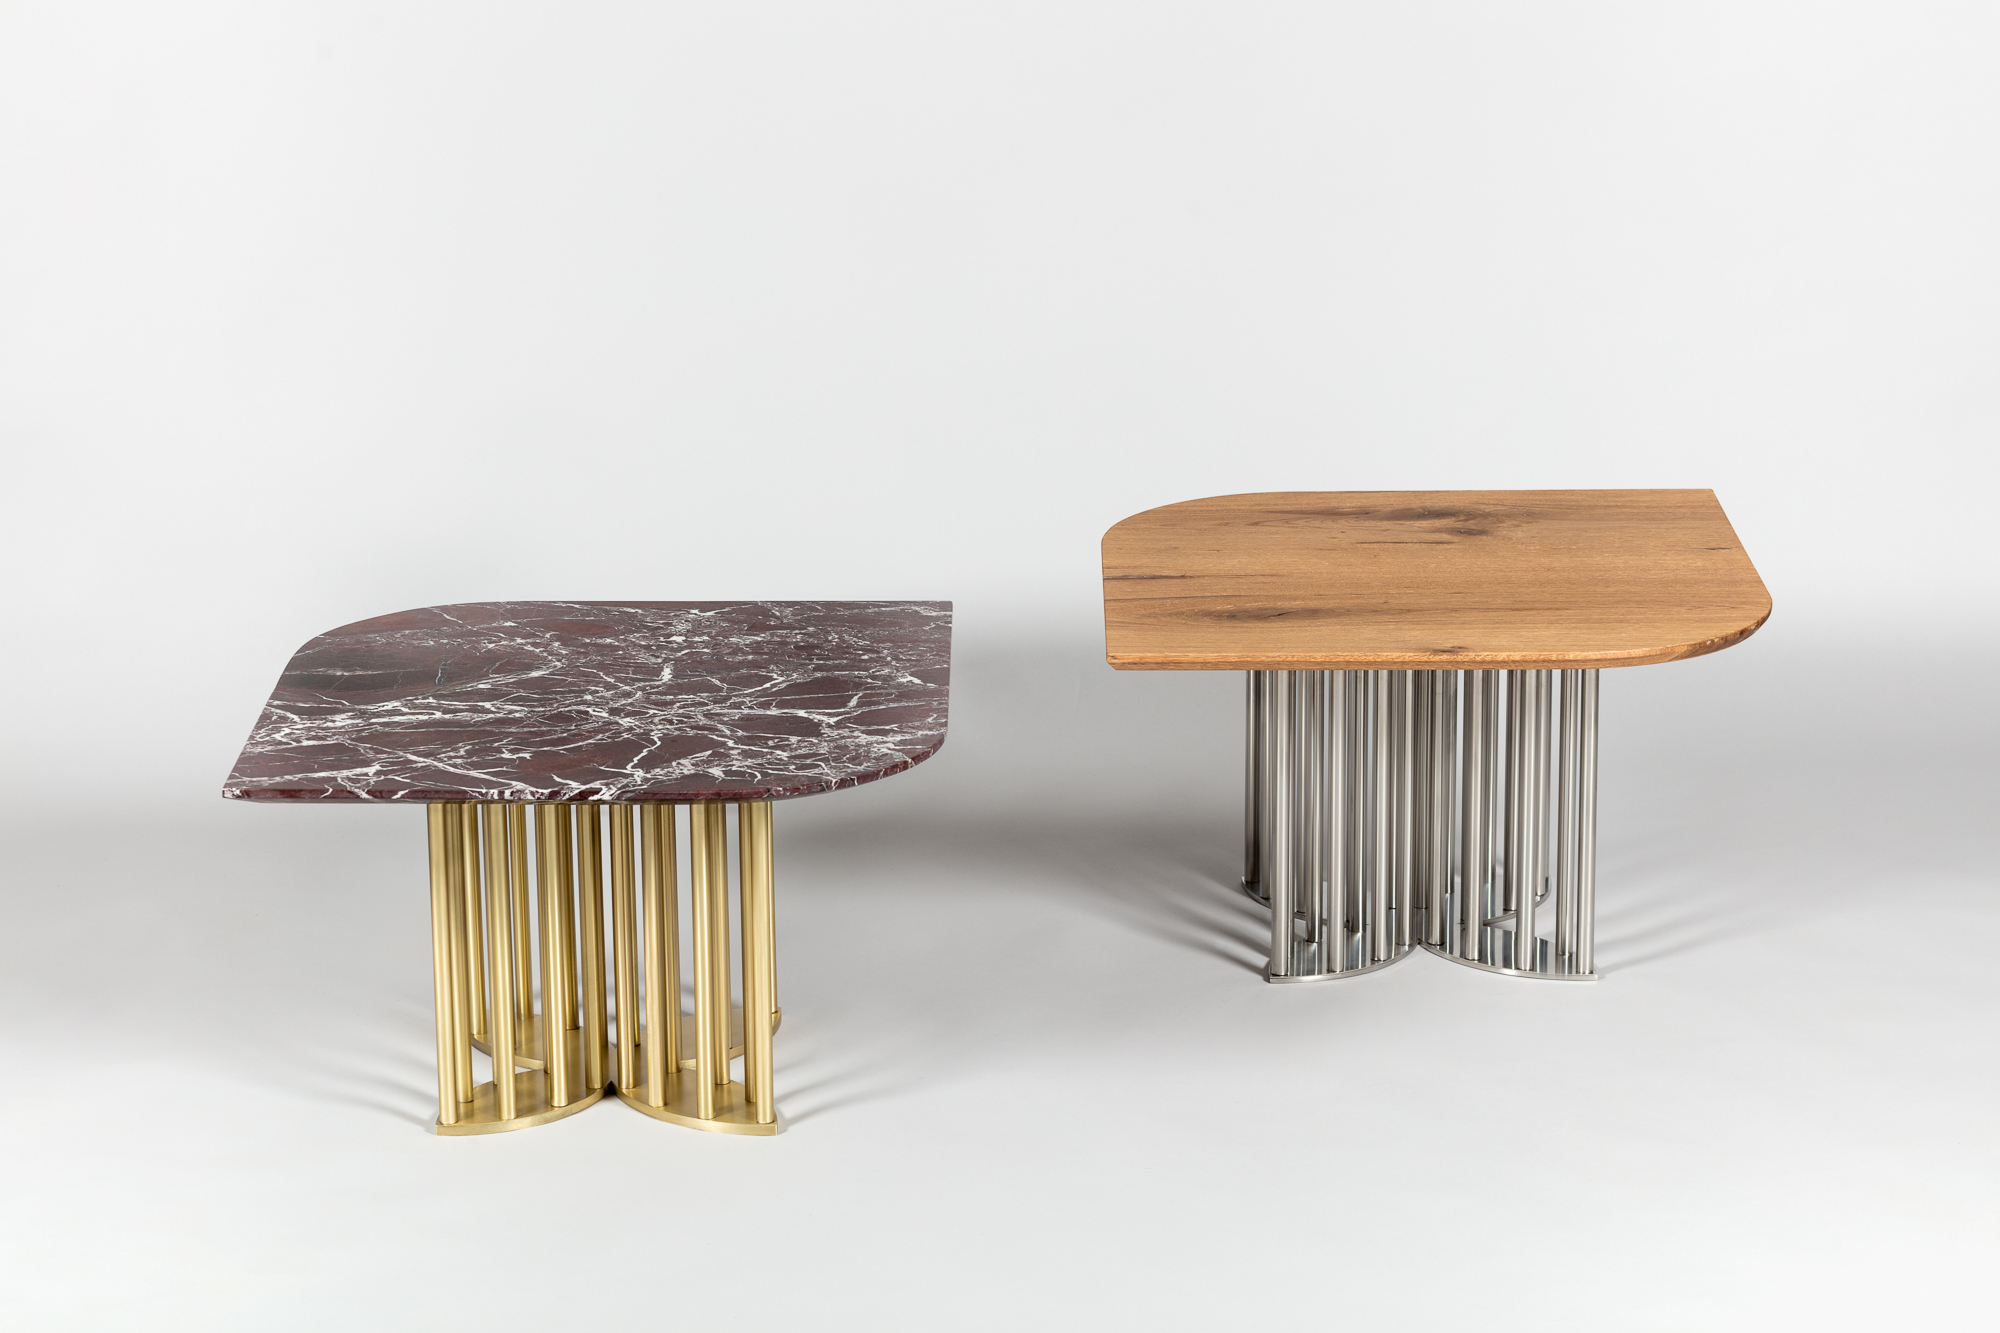 Top : Rosso Levanto Marble  Base : Solid Brass  Top : Solid Oak Veneer  Base : Stainless Steel